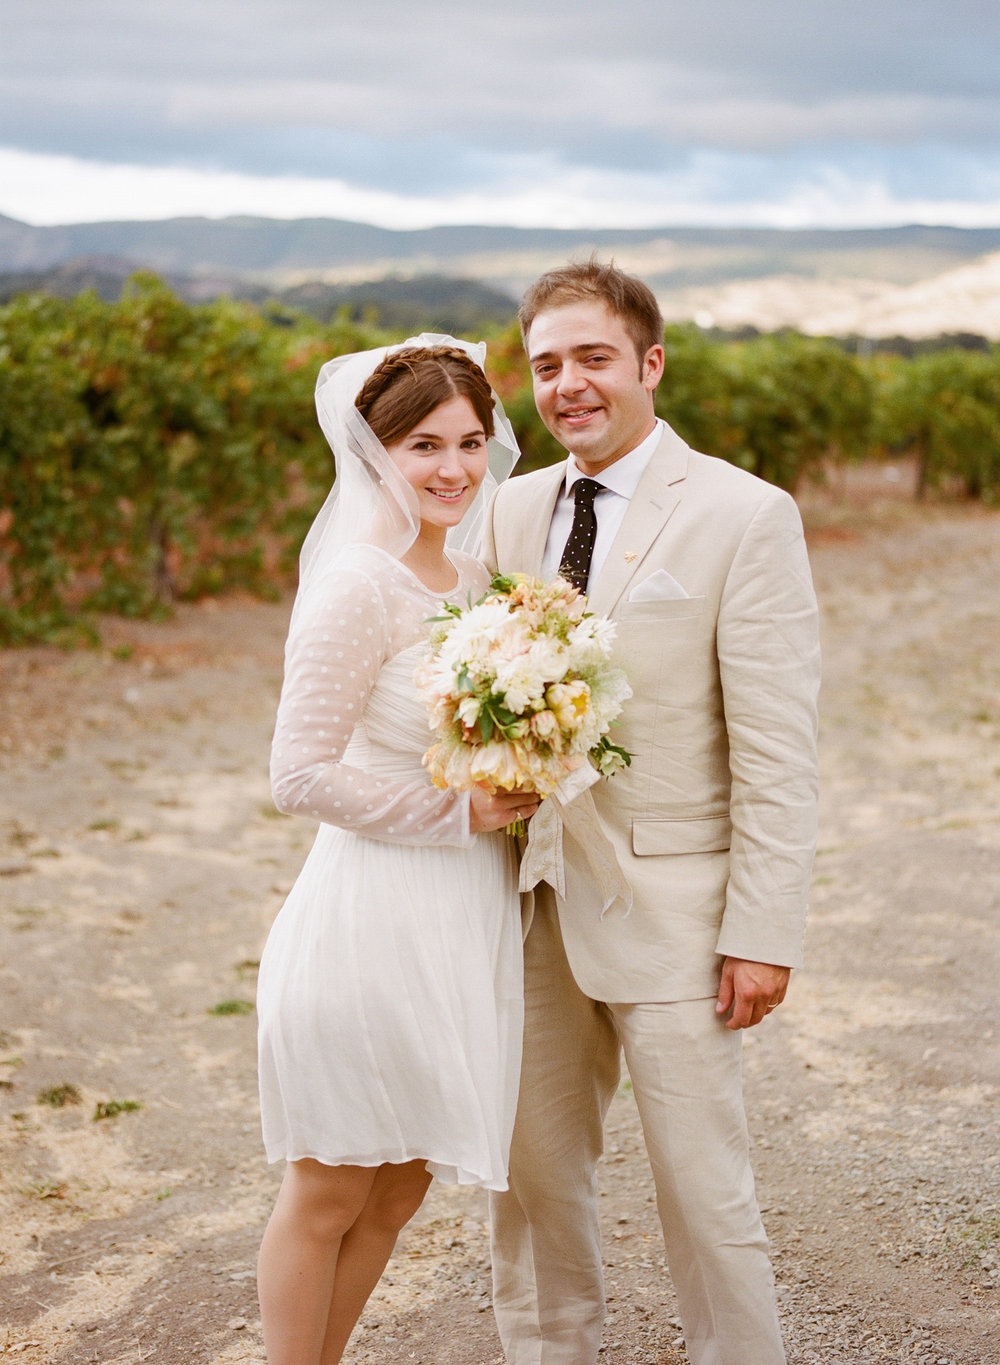 32-27-bride-groom-portrait-vineyards.jpg